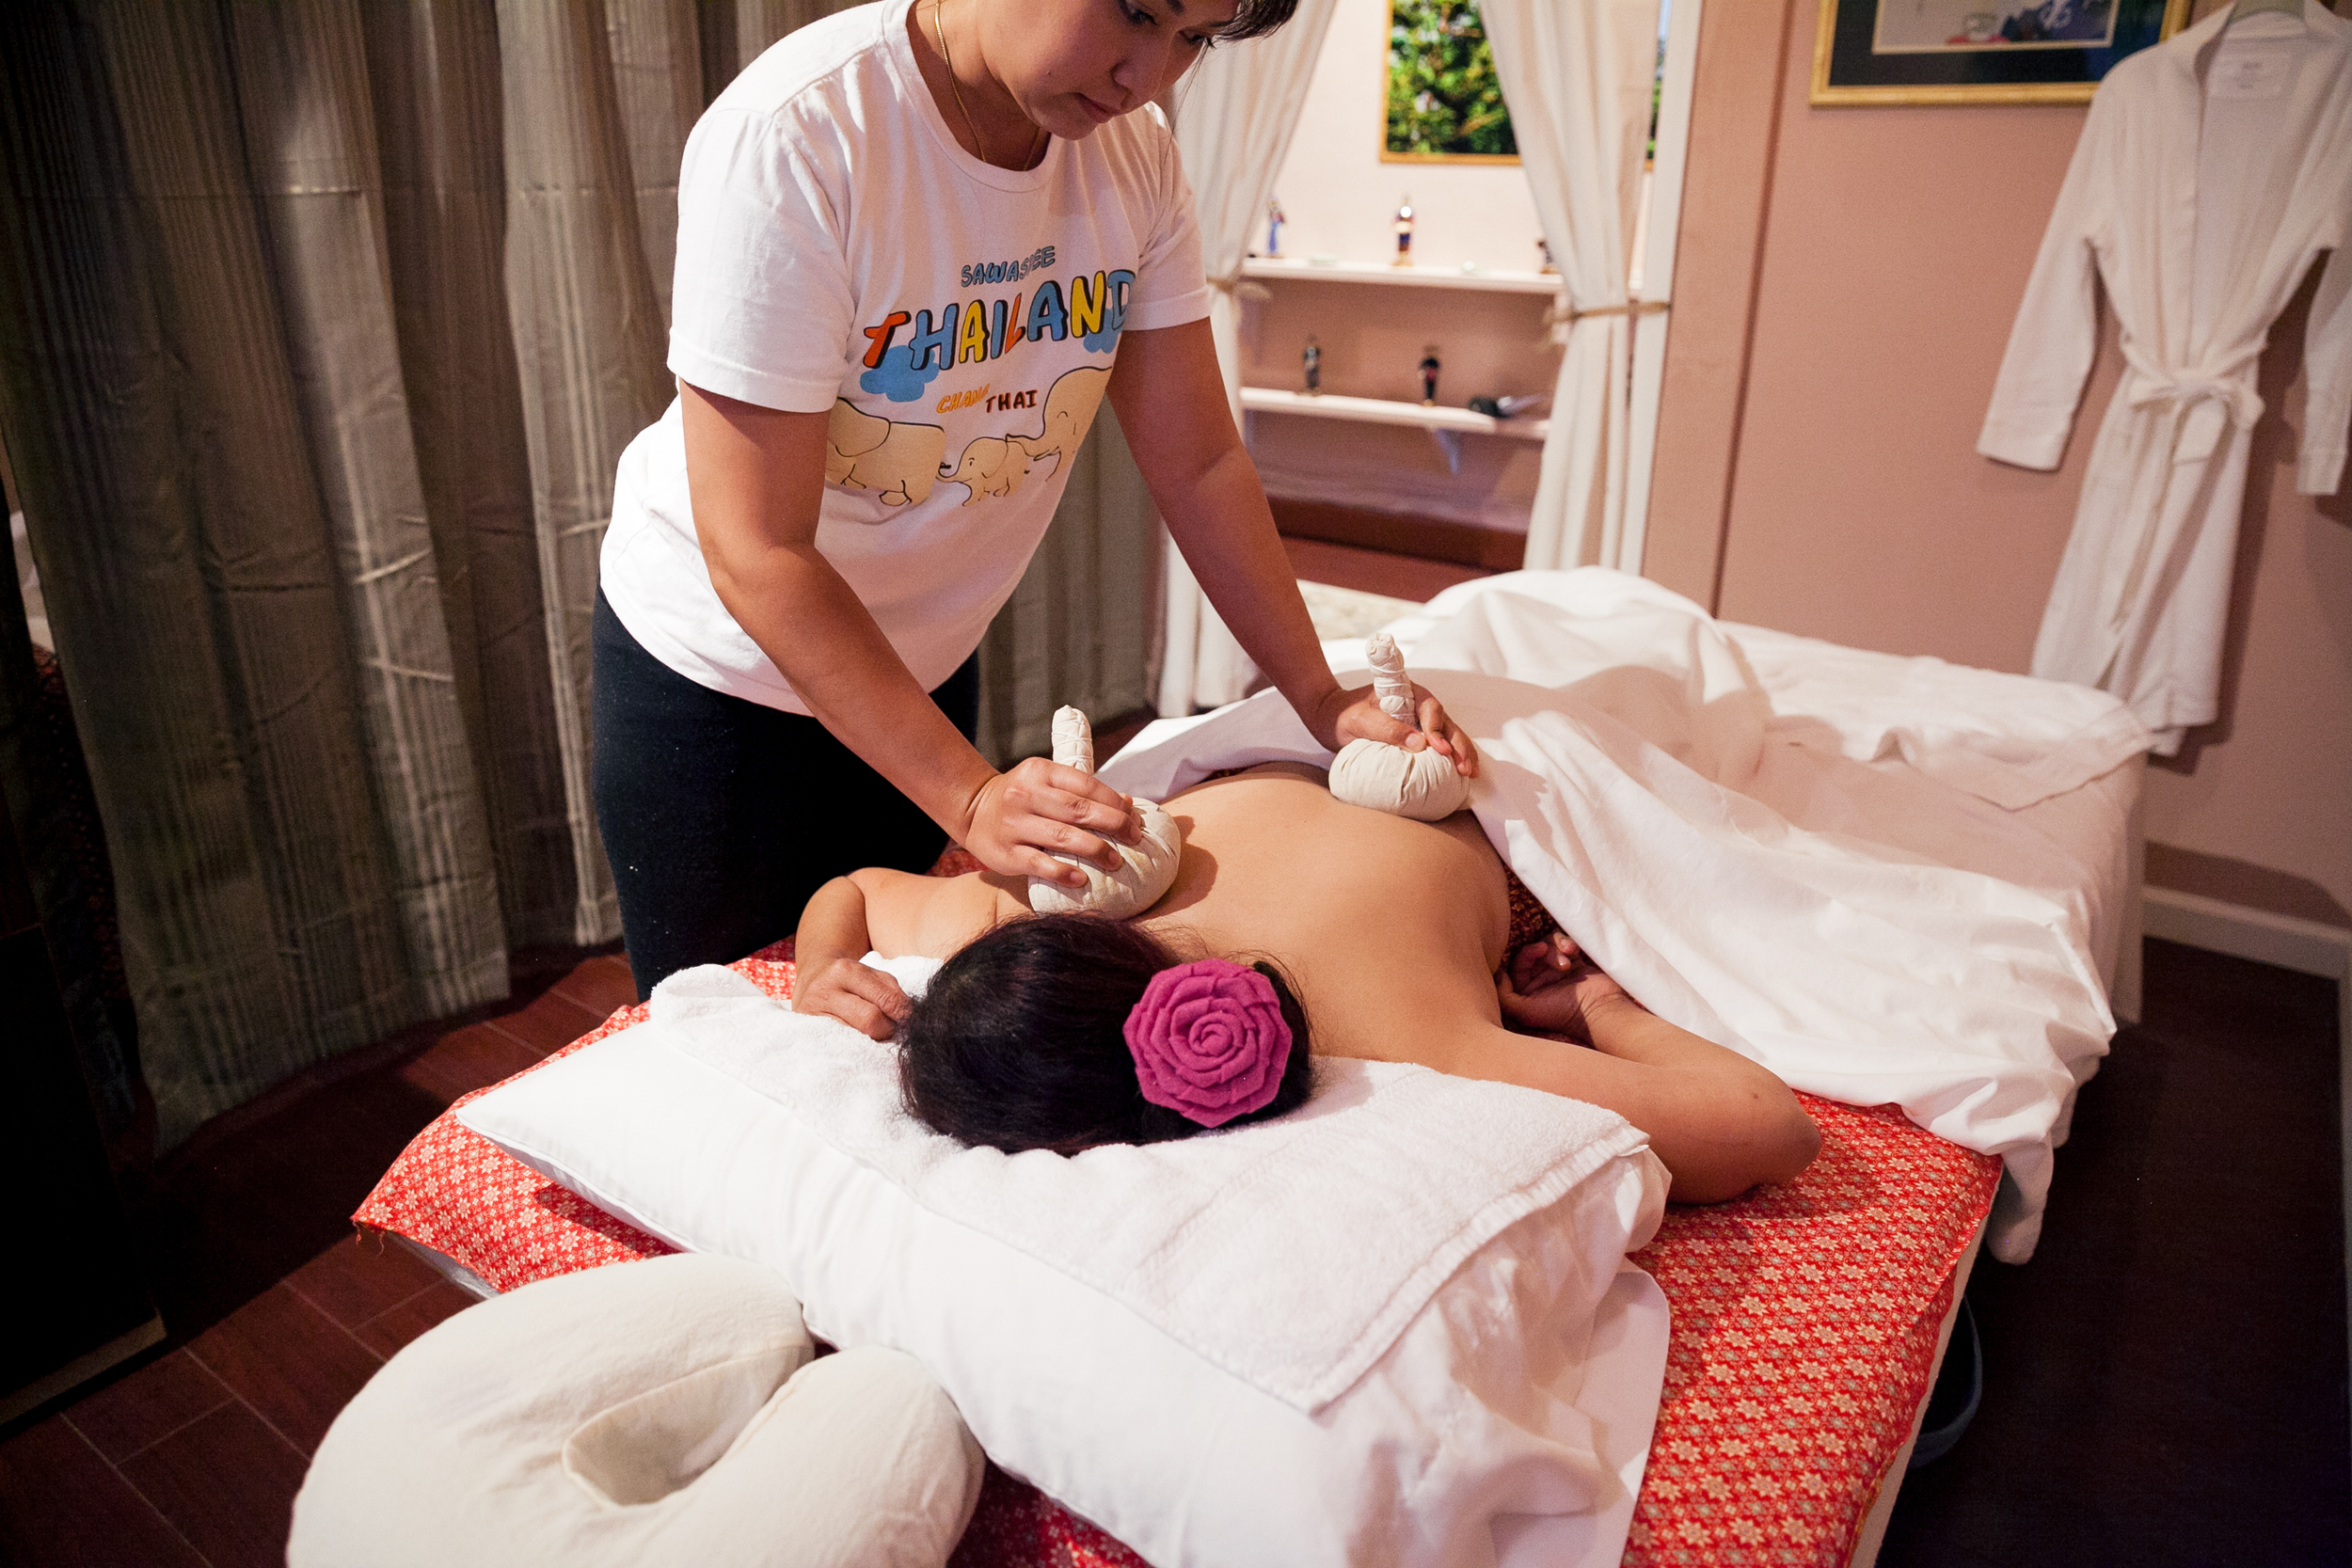 mon-siam-thai-massage-sj.jpg